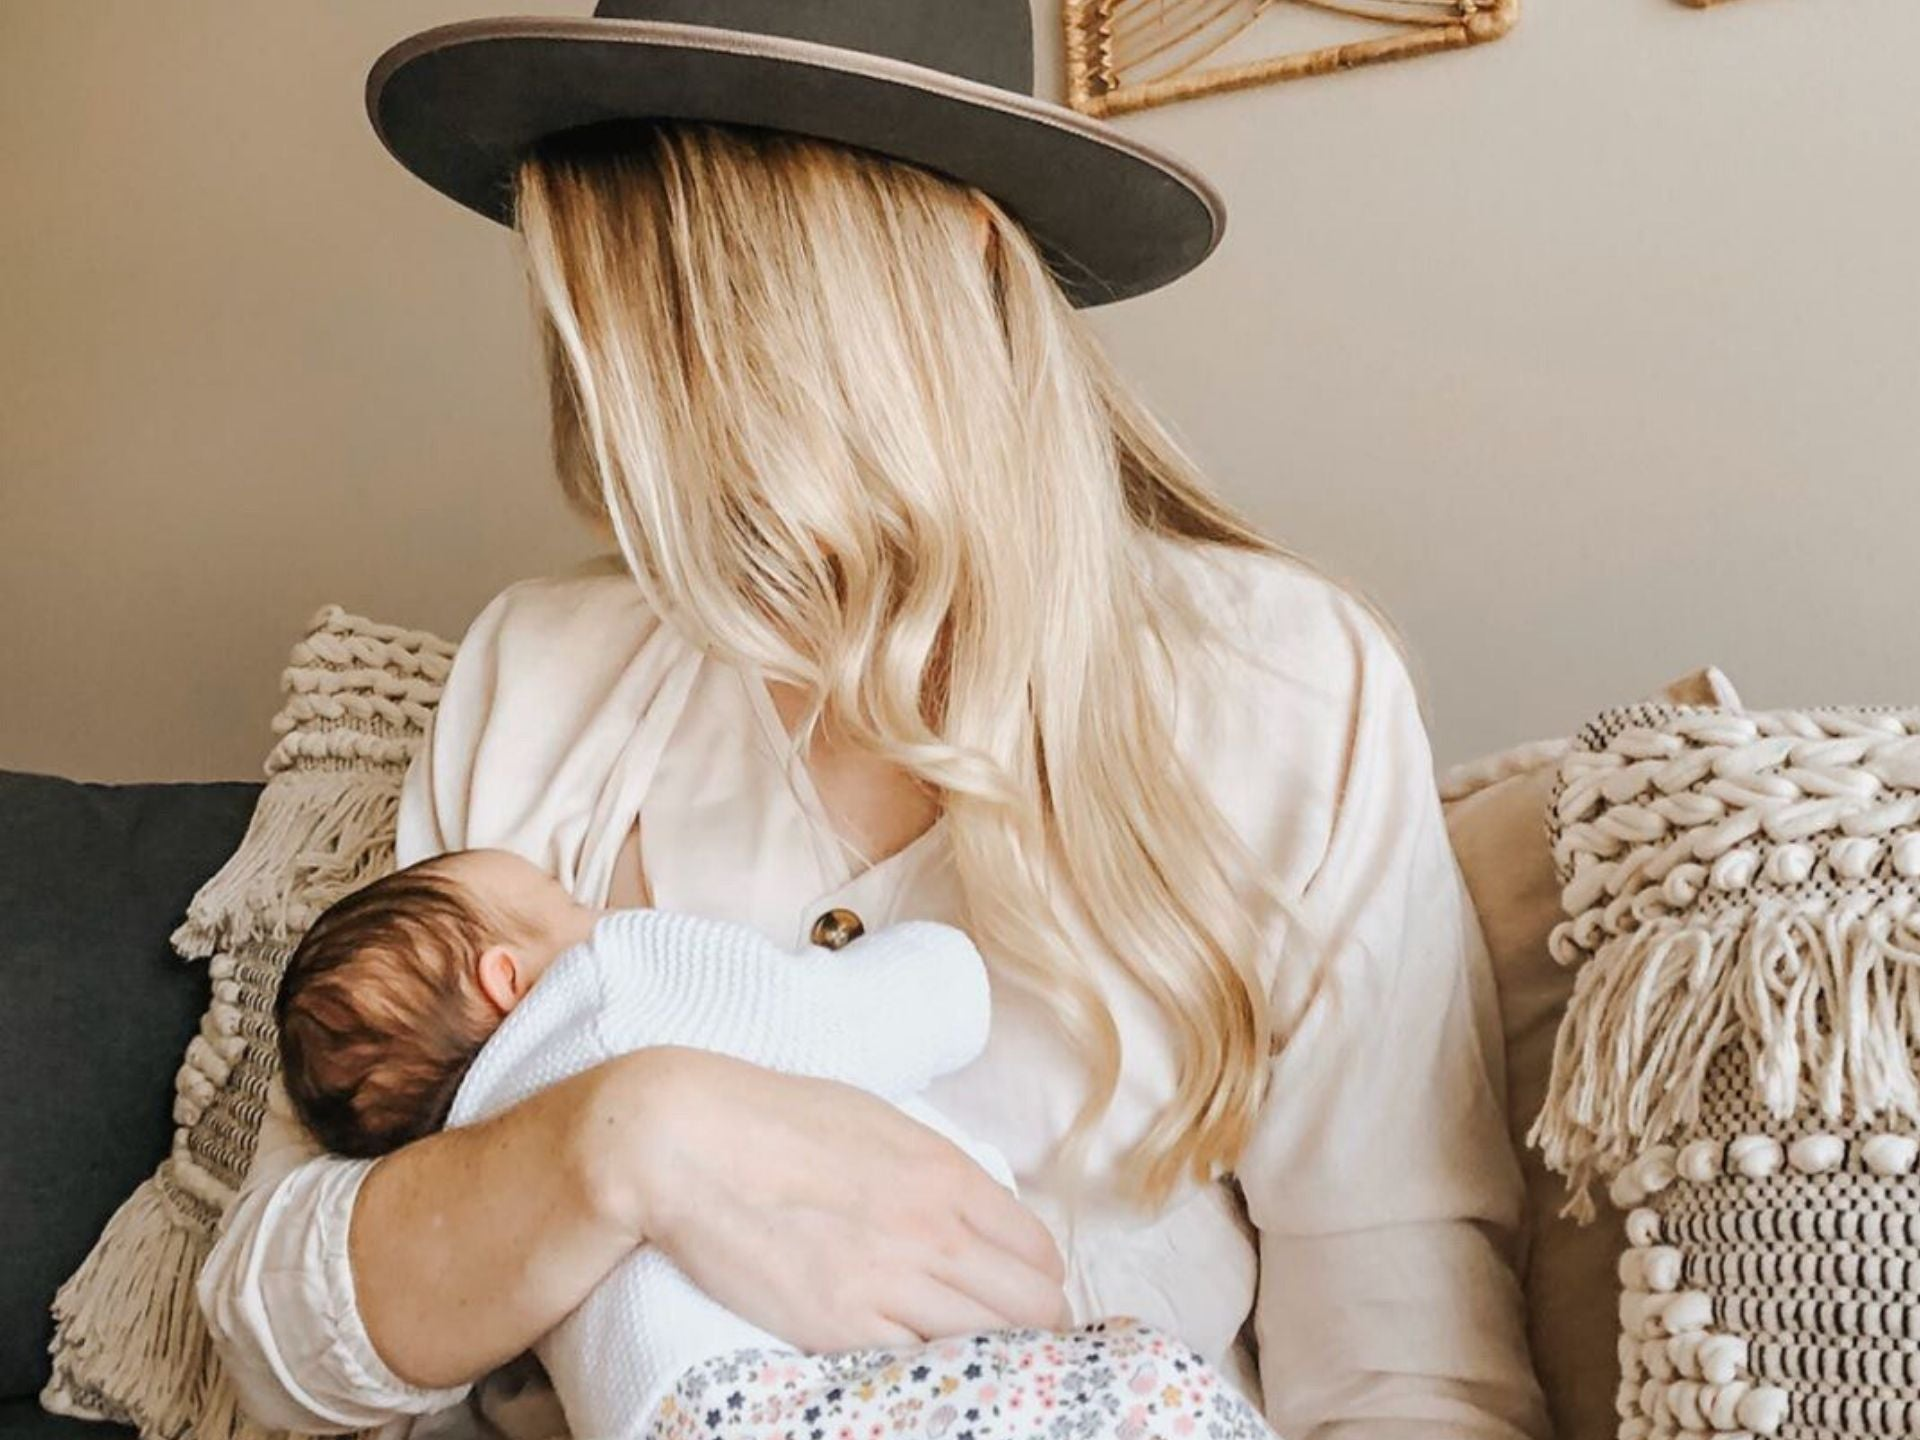 Postpartum Beauty - 7 Tips On How To Look Glamorous